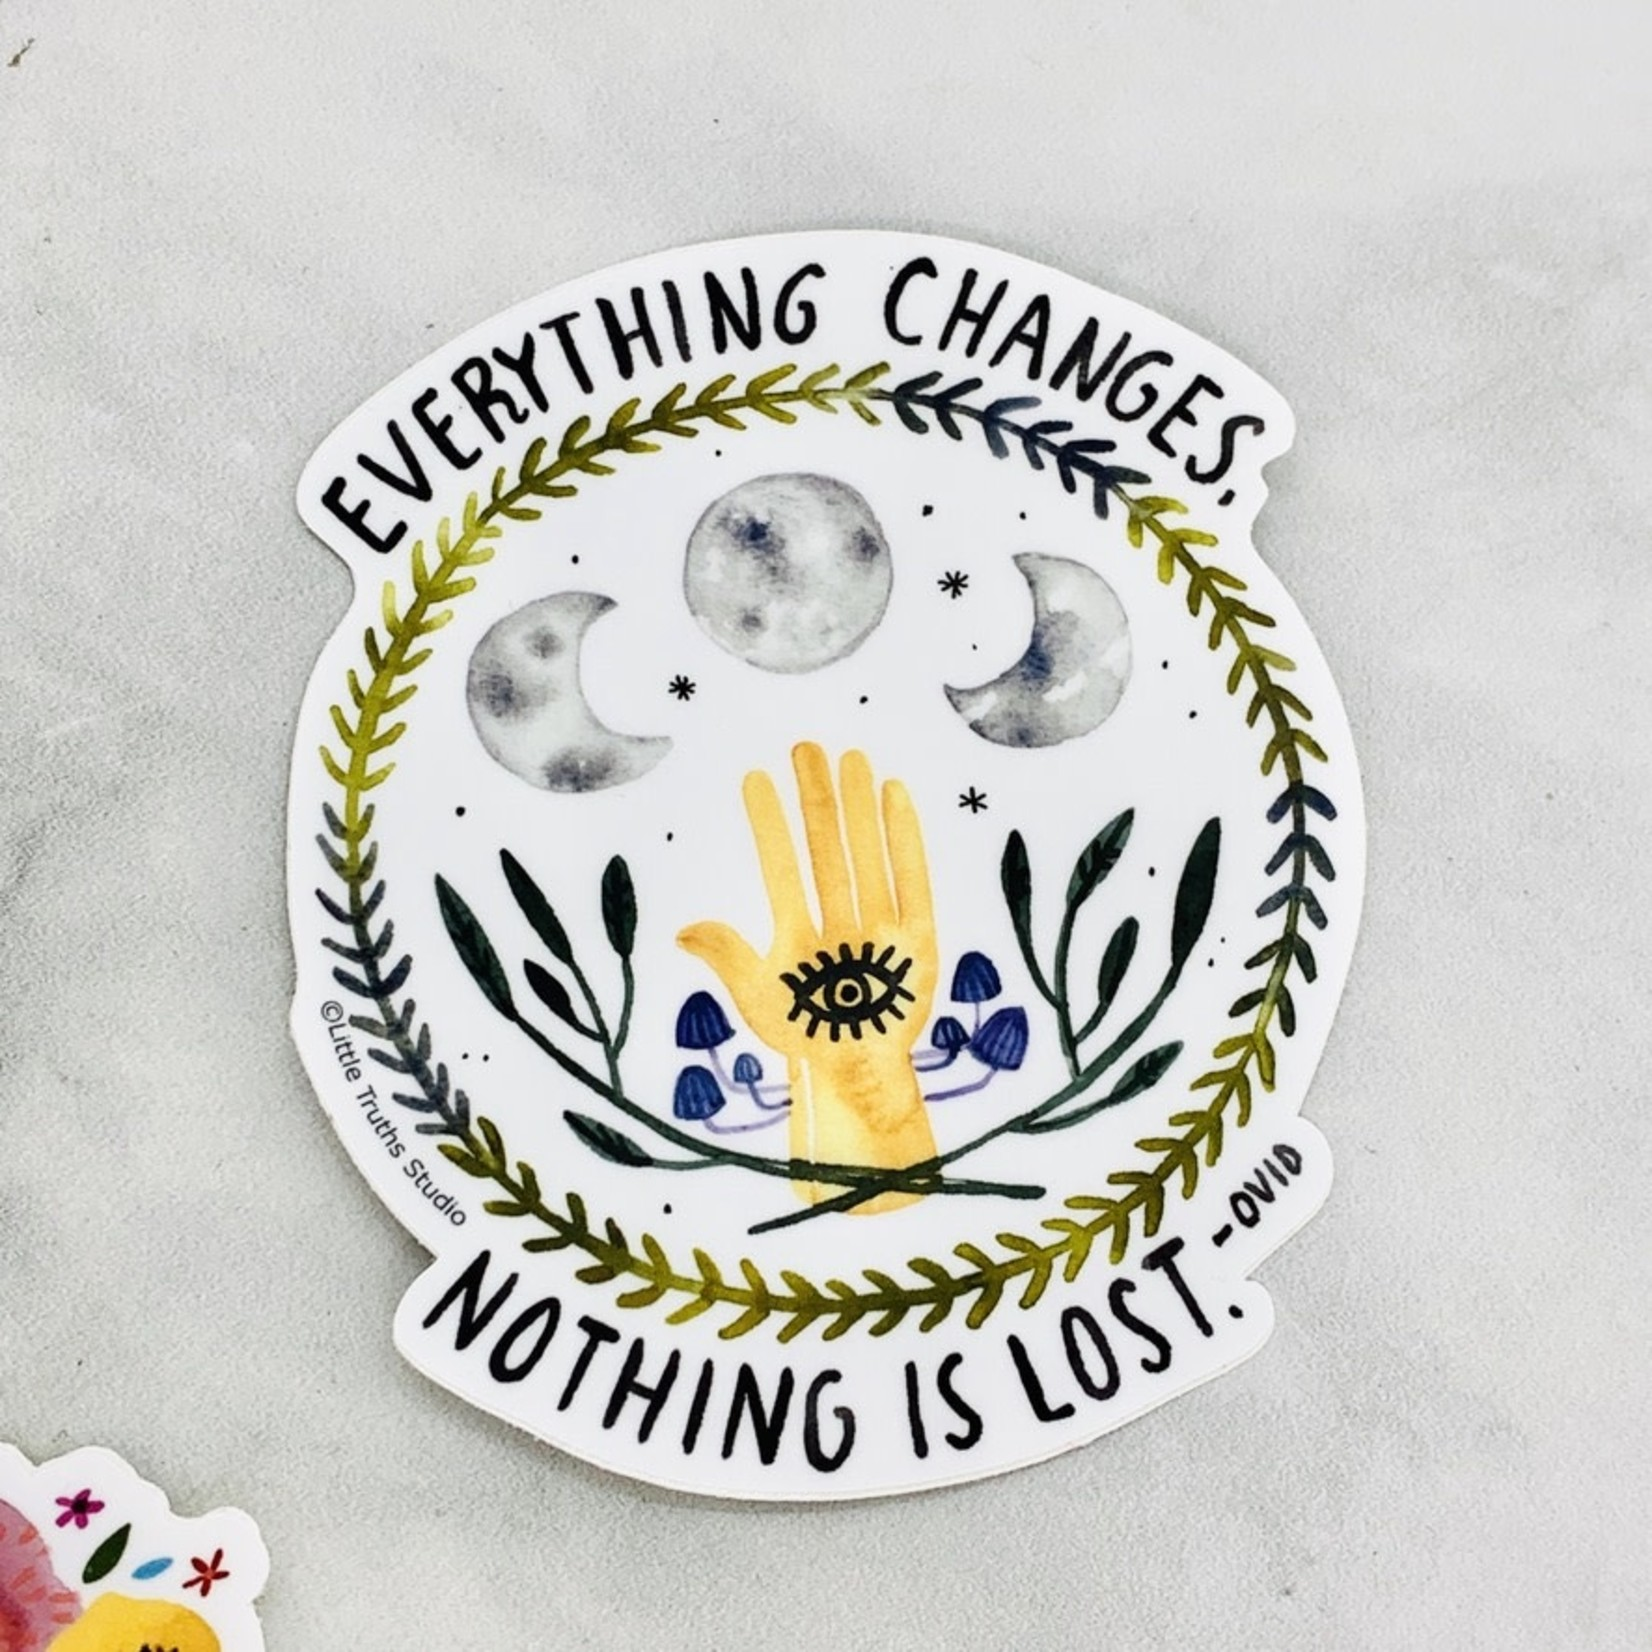 Everything Changes Nothing is Lost Sticker